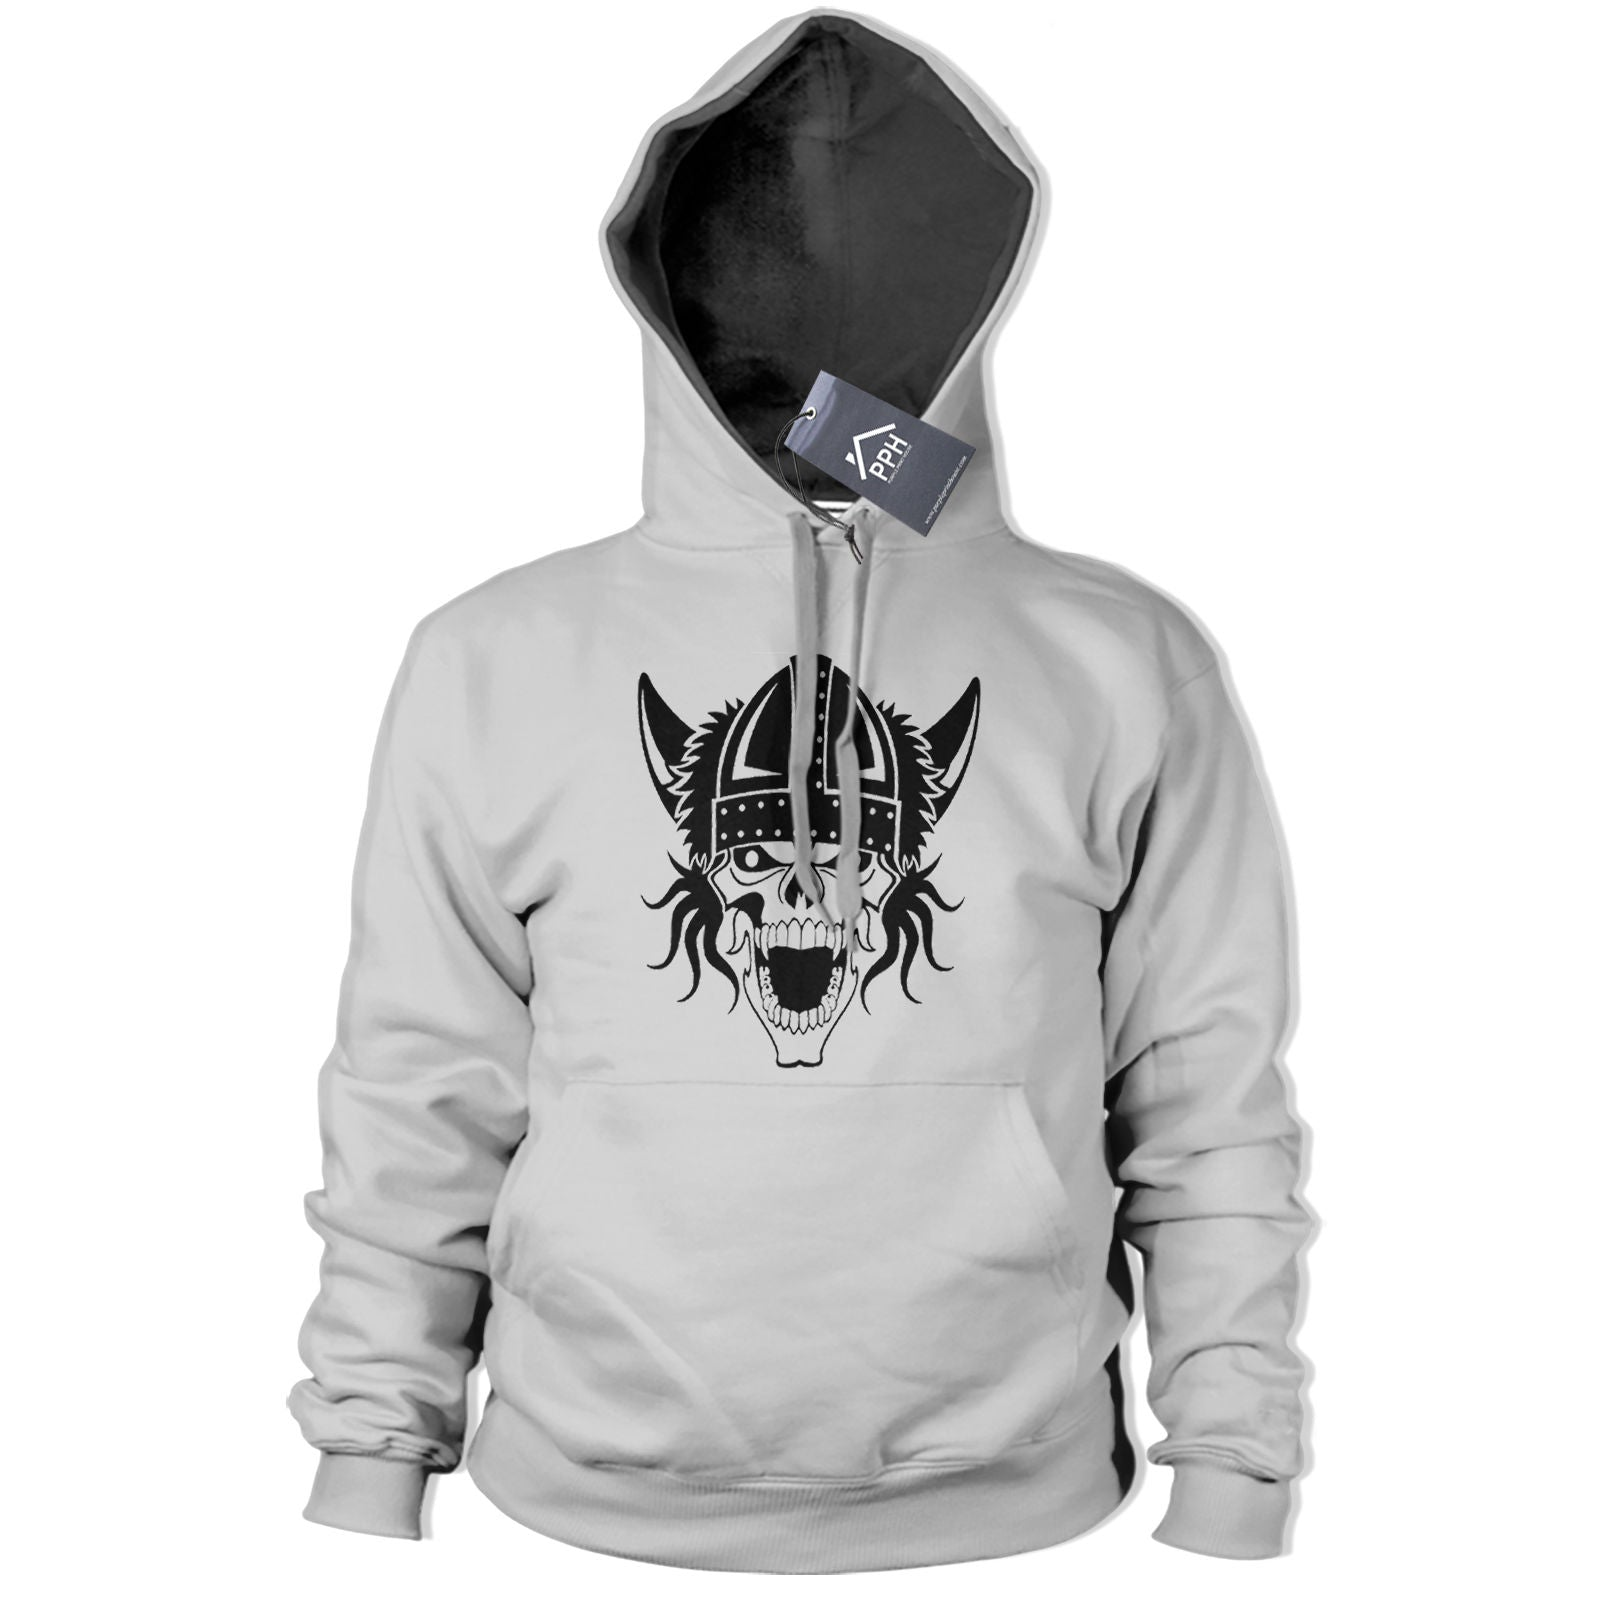 f5fca112 Viking Skull Hoodie War God Iceland Emo Goth Reaper Hoody Top Mens Womens  363 - The Clothing Shed